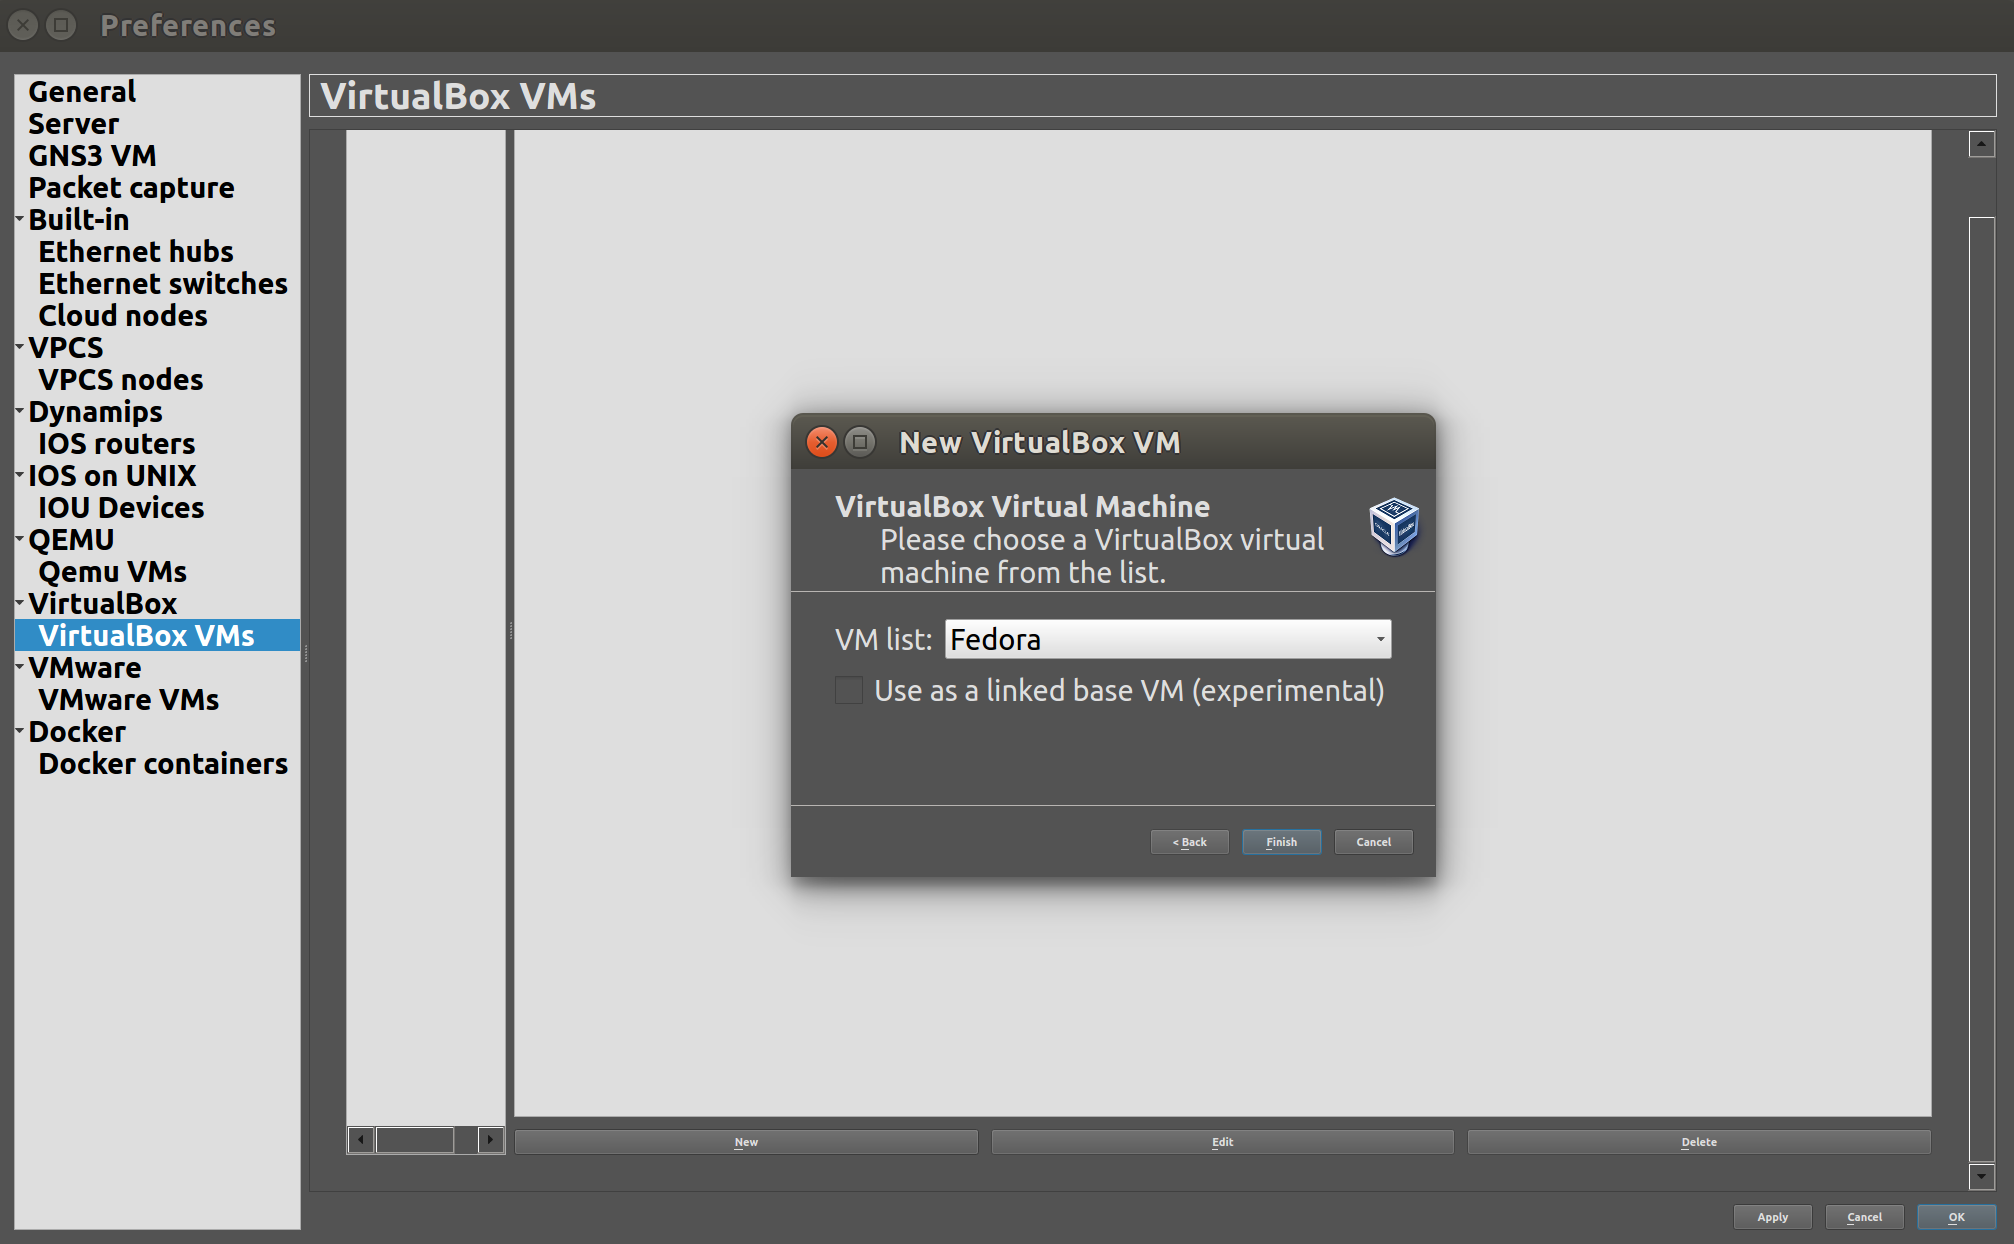 Virtualbox: KVM support available false · Issue #109 · GNS3